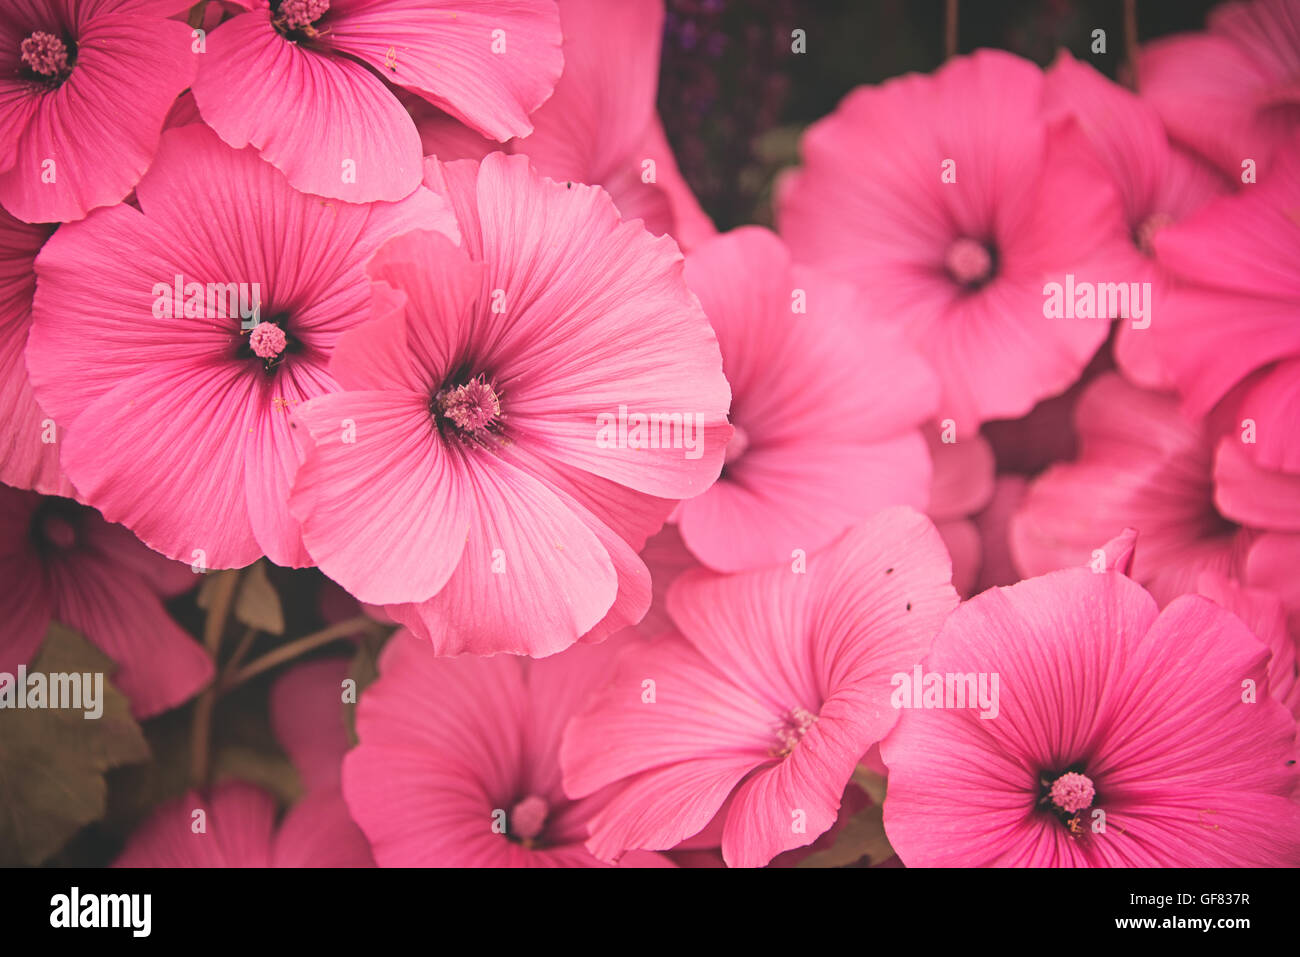 Lavatera silver cup is a hardy annual with pink cup shaped flowers lavatera silver cup is a hardy annual with pink cup shaped flowers at hampton court flower show in surrey england izmirmasajfo